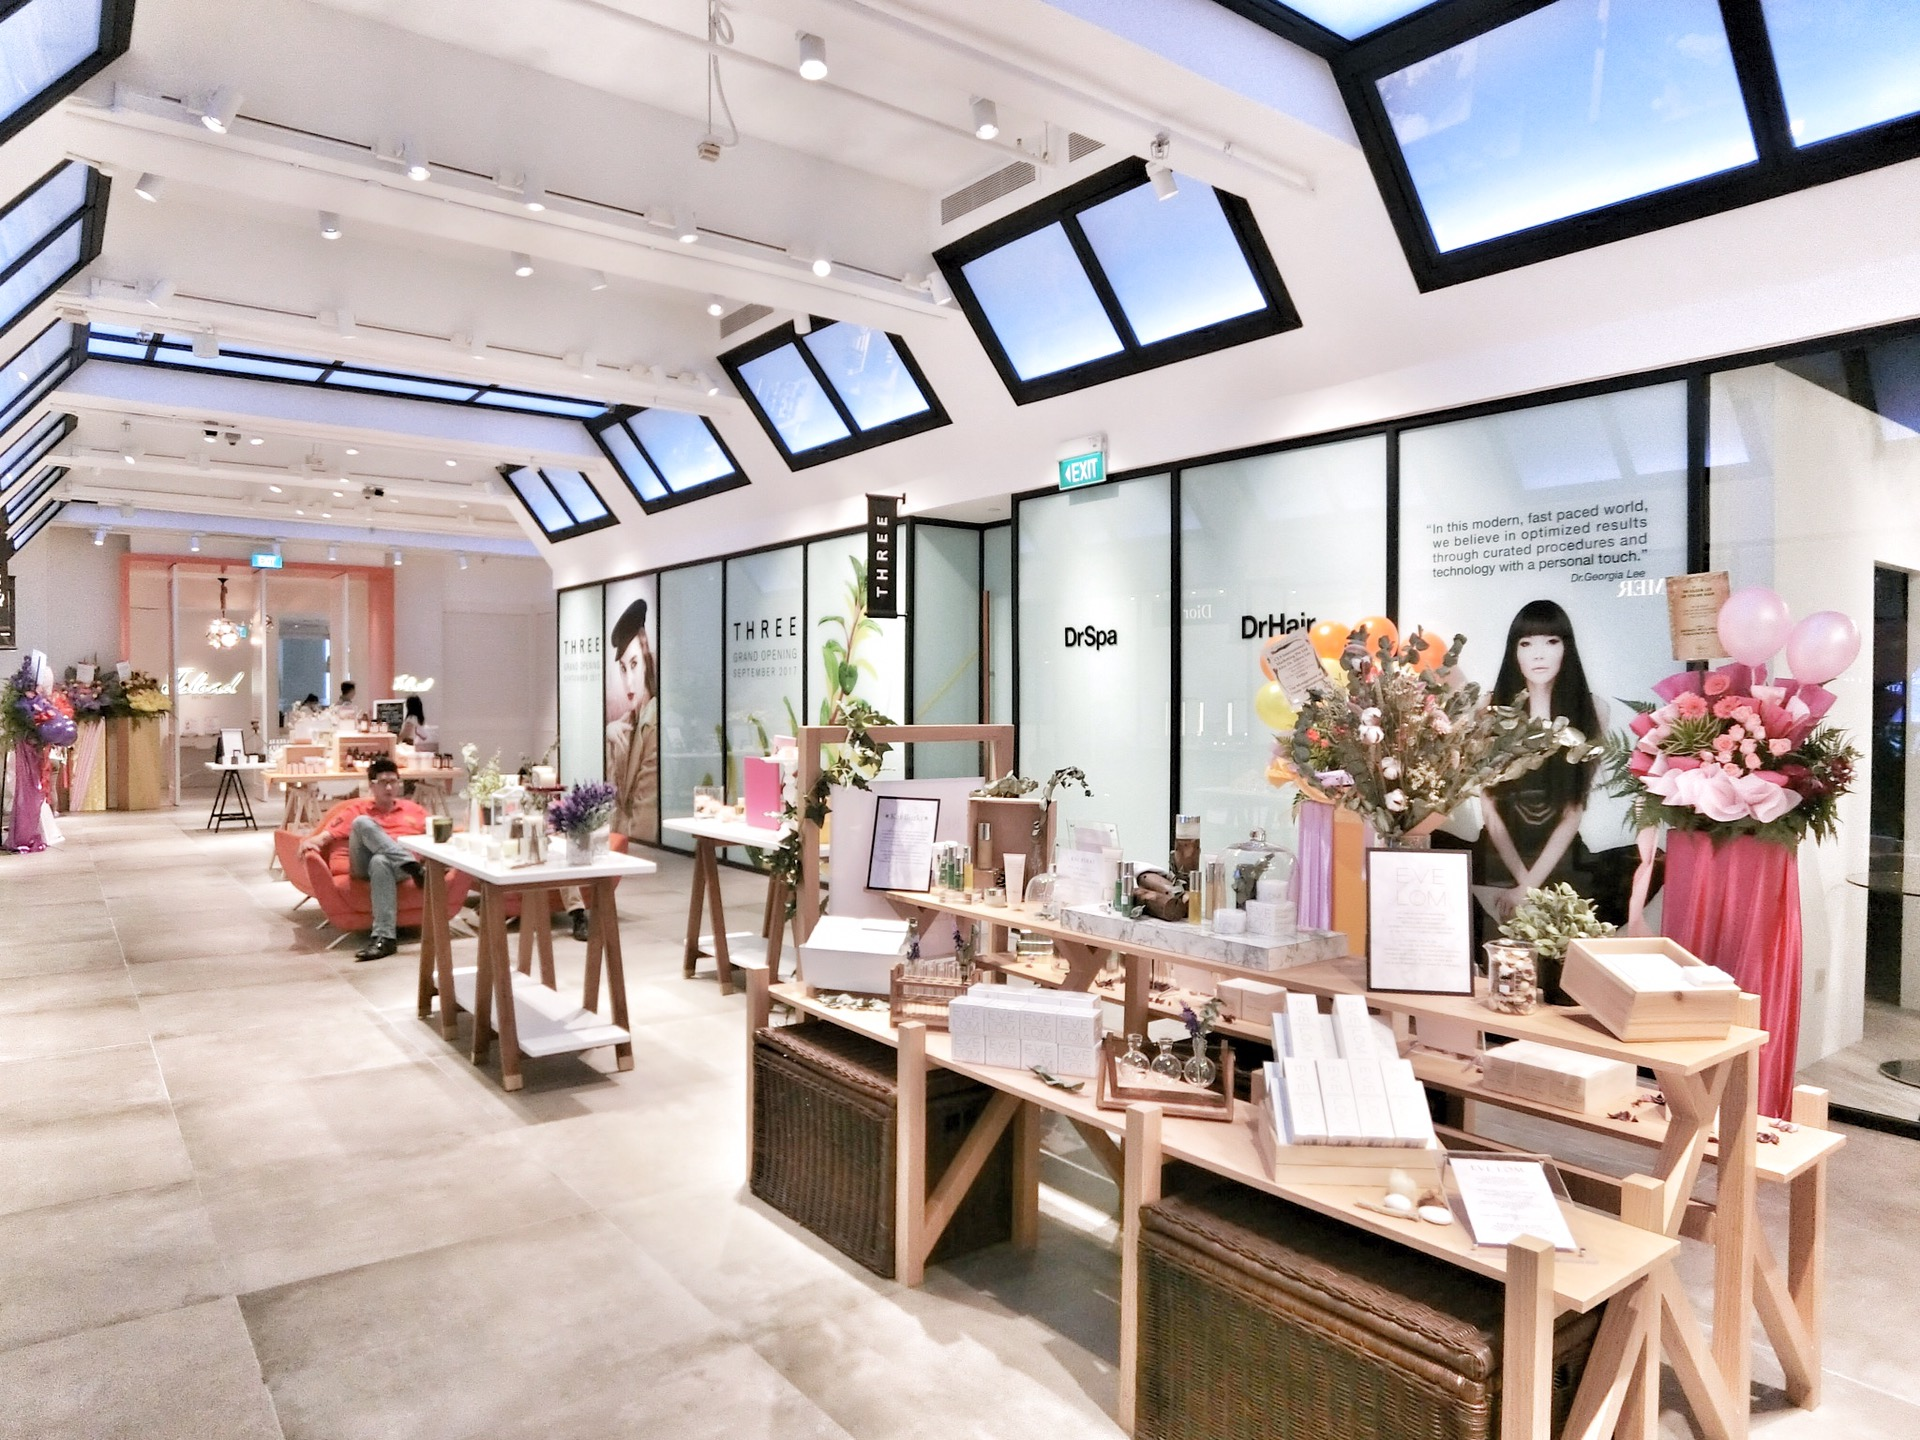 Three Cosmetics launches in Singapore at Tang Plaza, Orchard Road